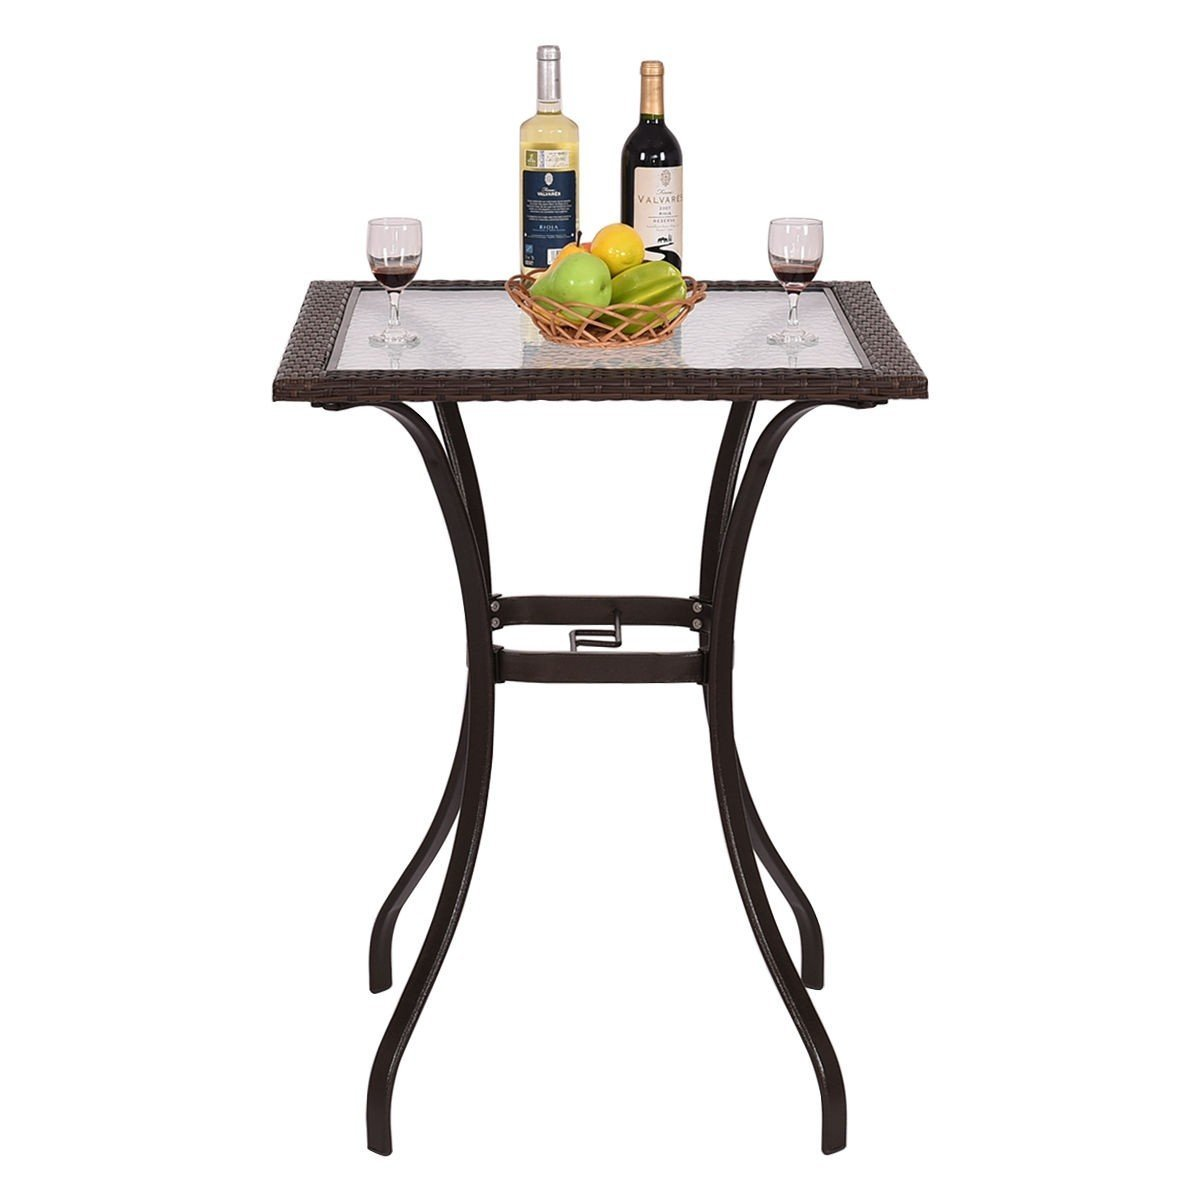 Custpromo Patio Rattan Bar Square Table Patio Bistro Table with Glass Top Steel Frame Garden Backyard Furniture